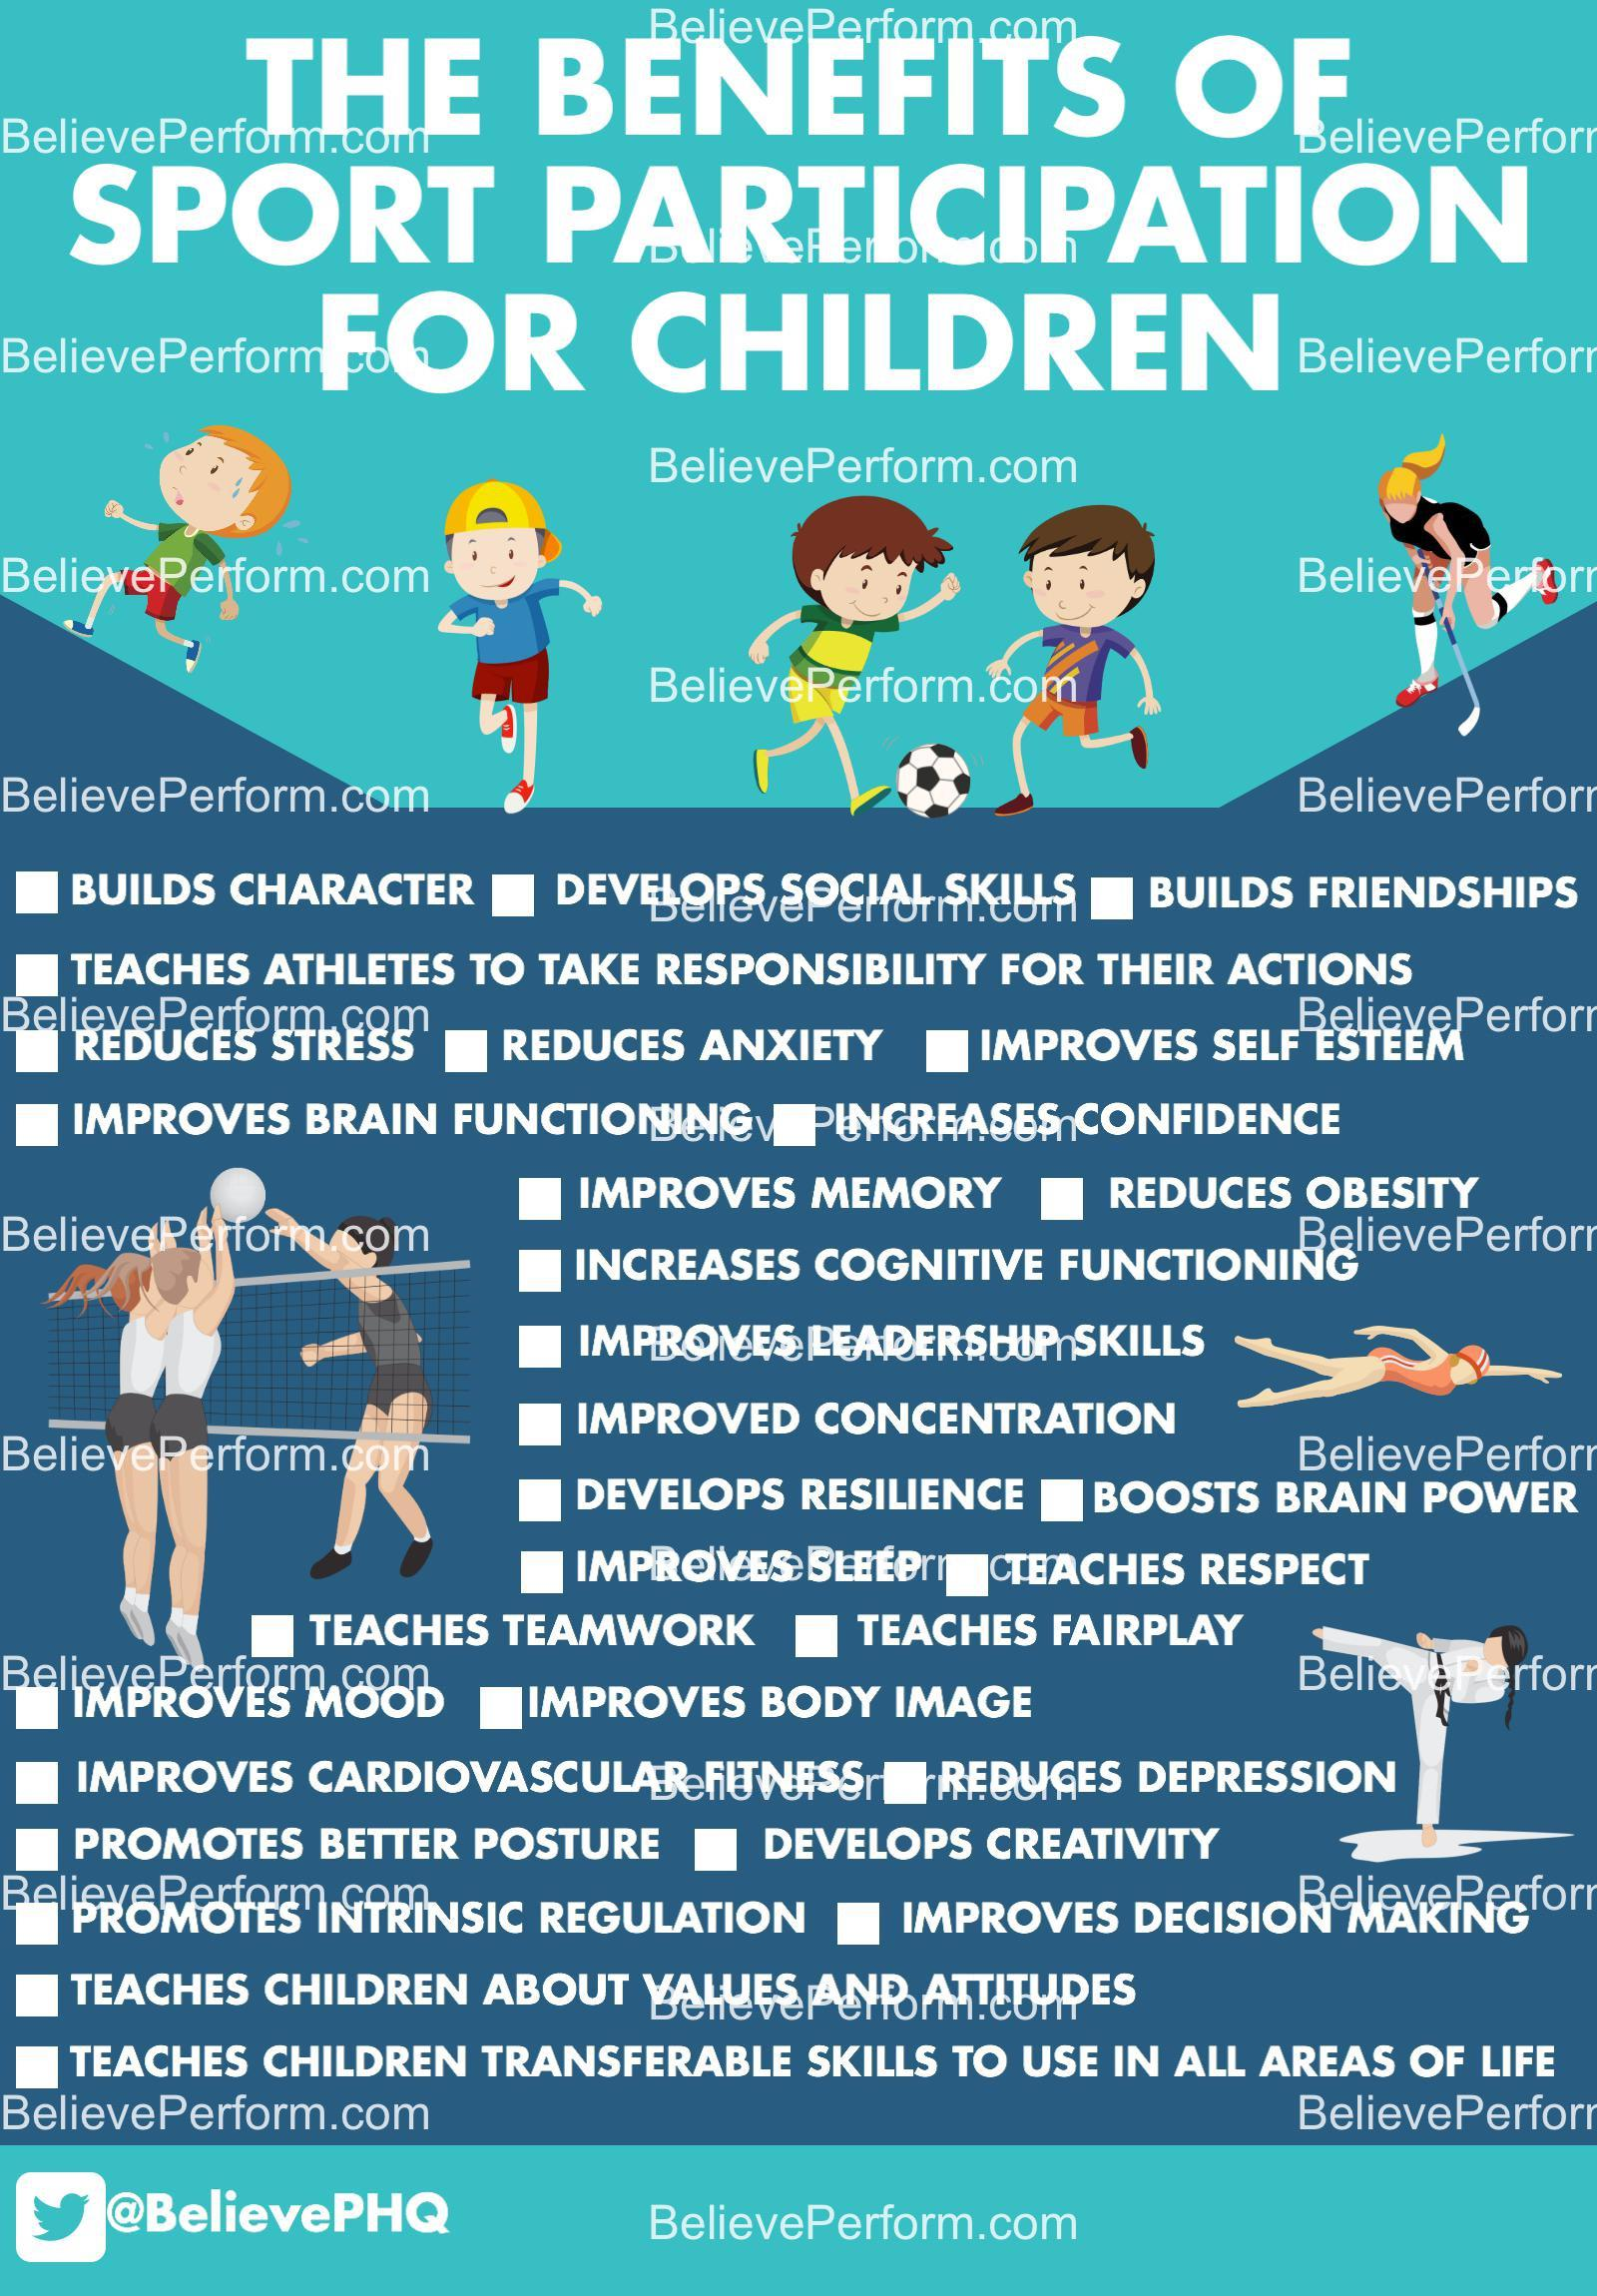 Top 10 Health Benefits of Youth Sports